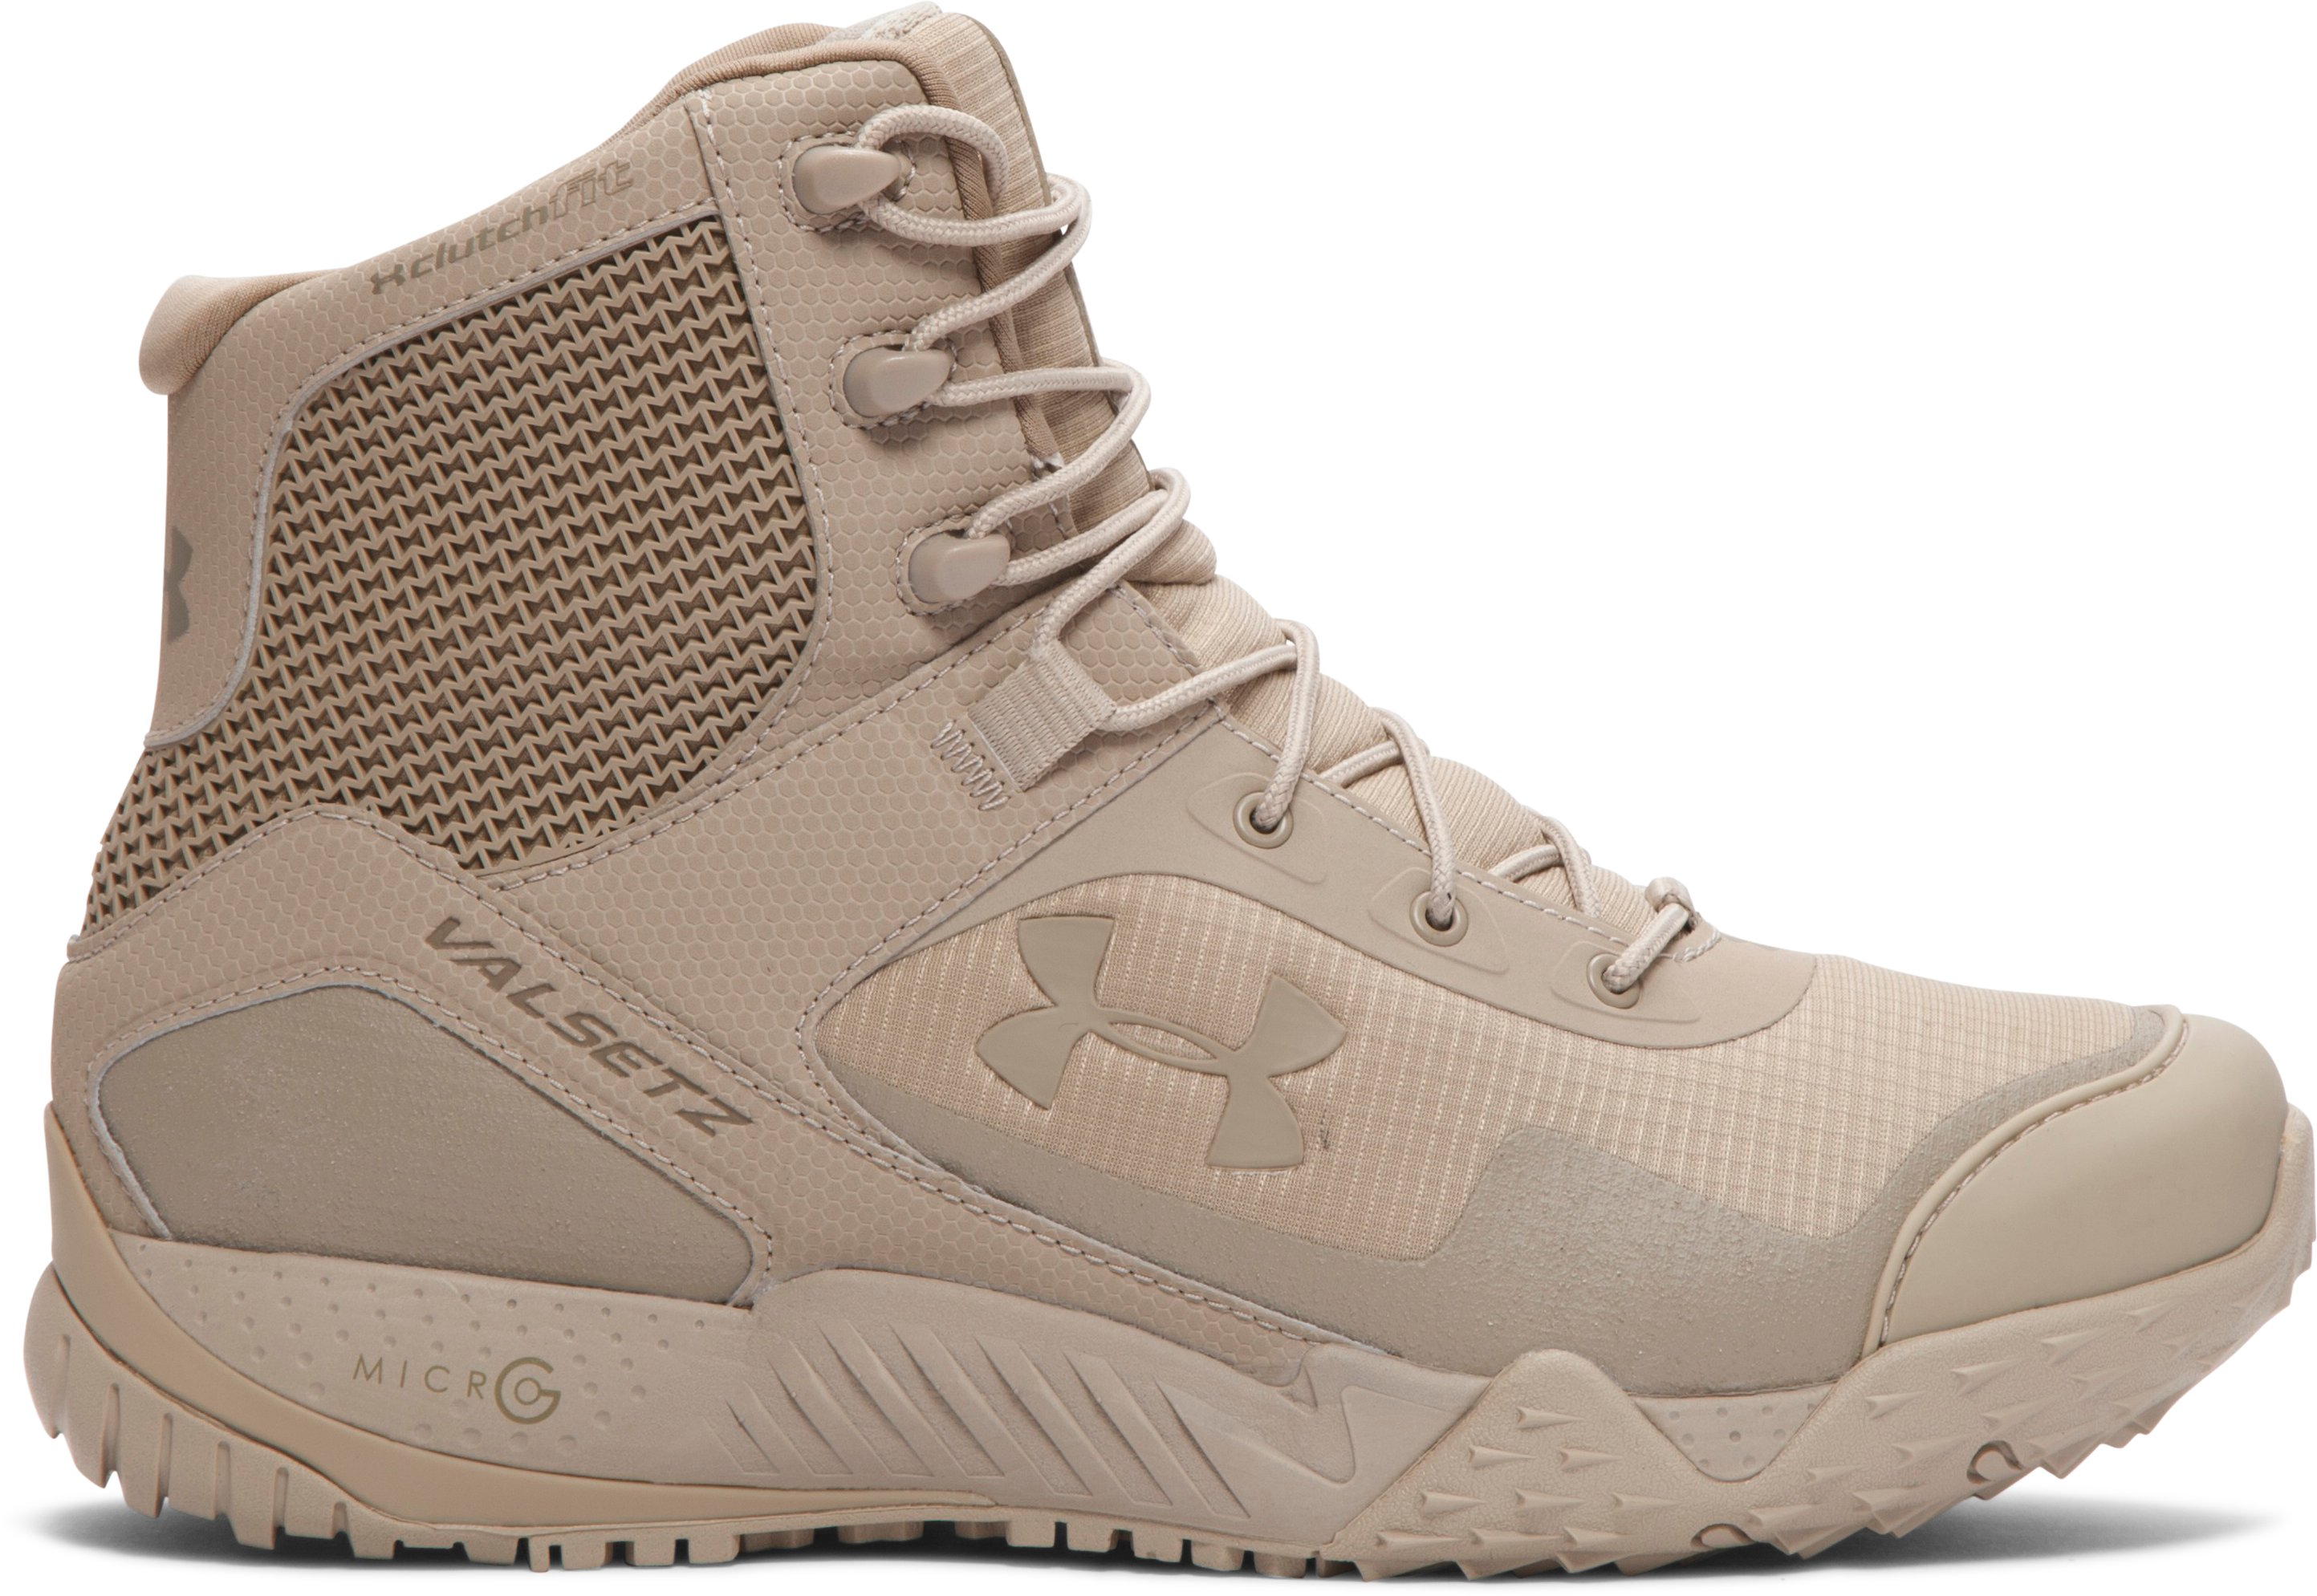 desert sand boots Men's UA Valsetz RTS Tactical Boots Great boots!...Holding up well....Nice cushioning.